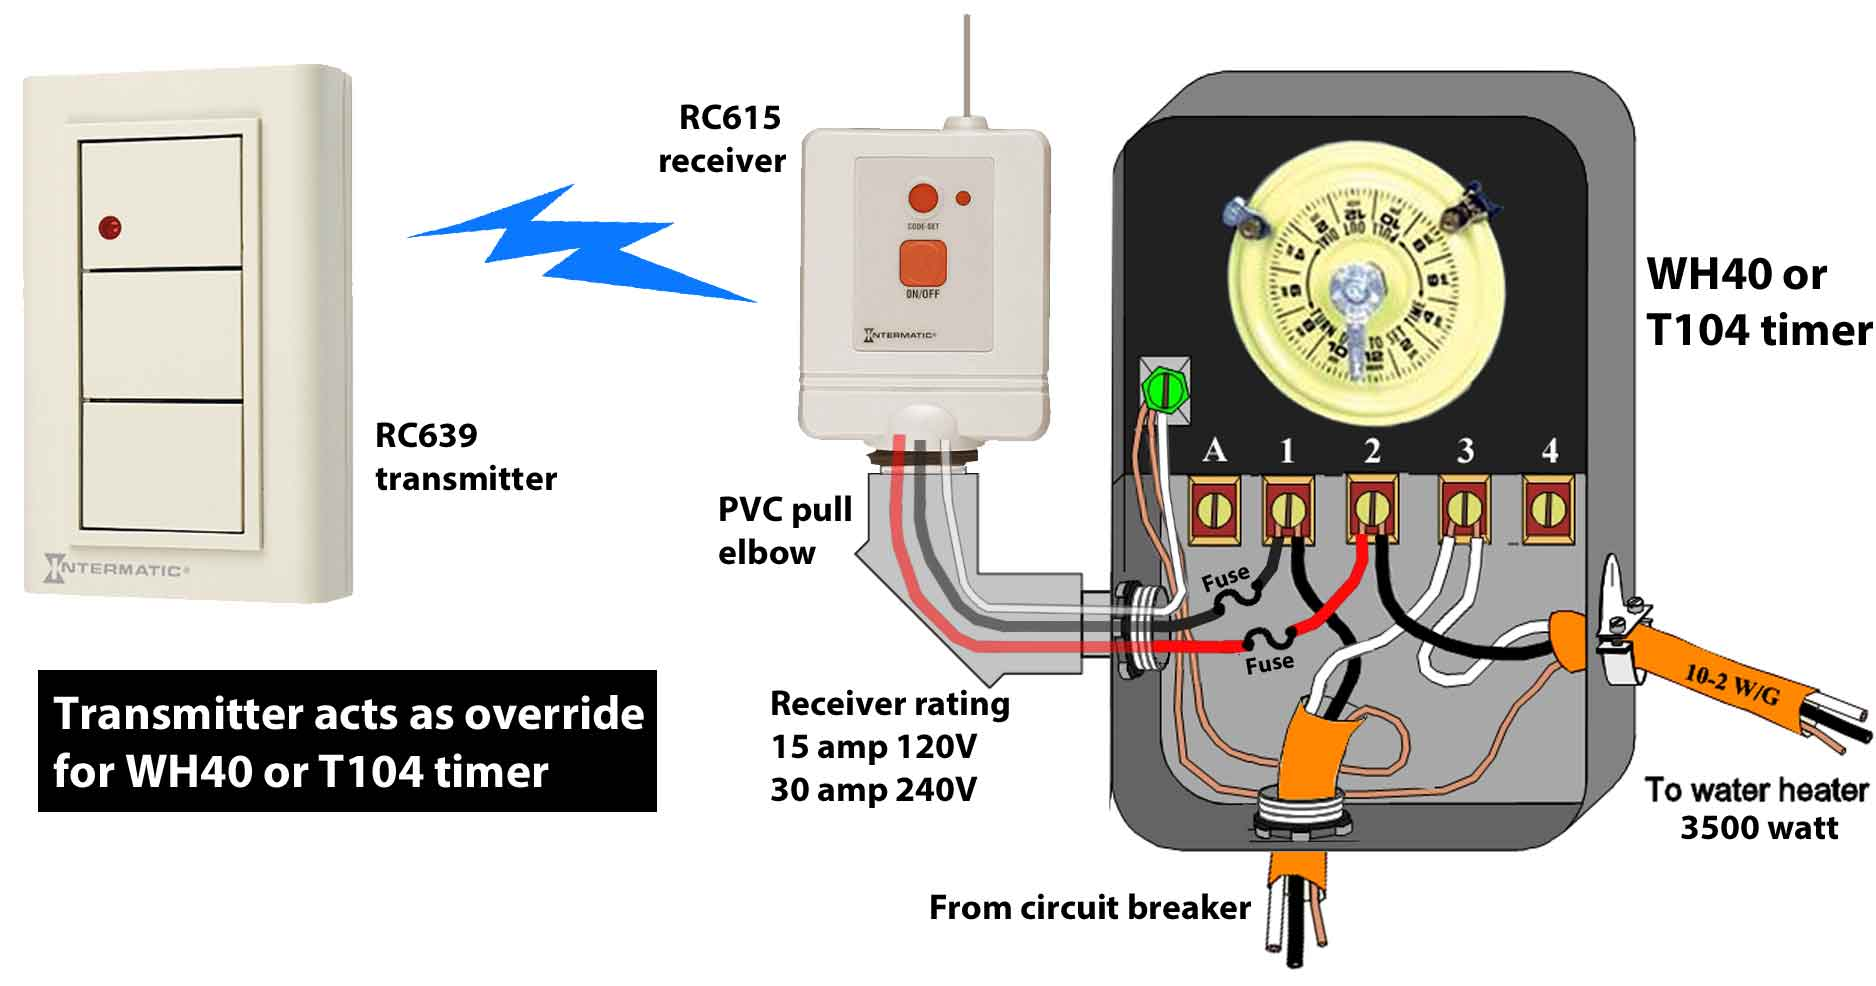 Intermatic remote RC control how to wire wh40 water heater timer time clock wiring diagram at webbmarketing.co